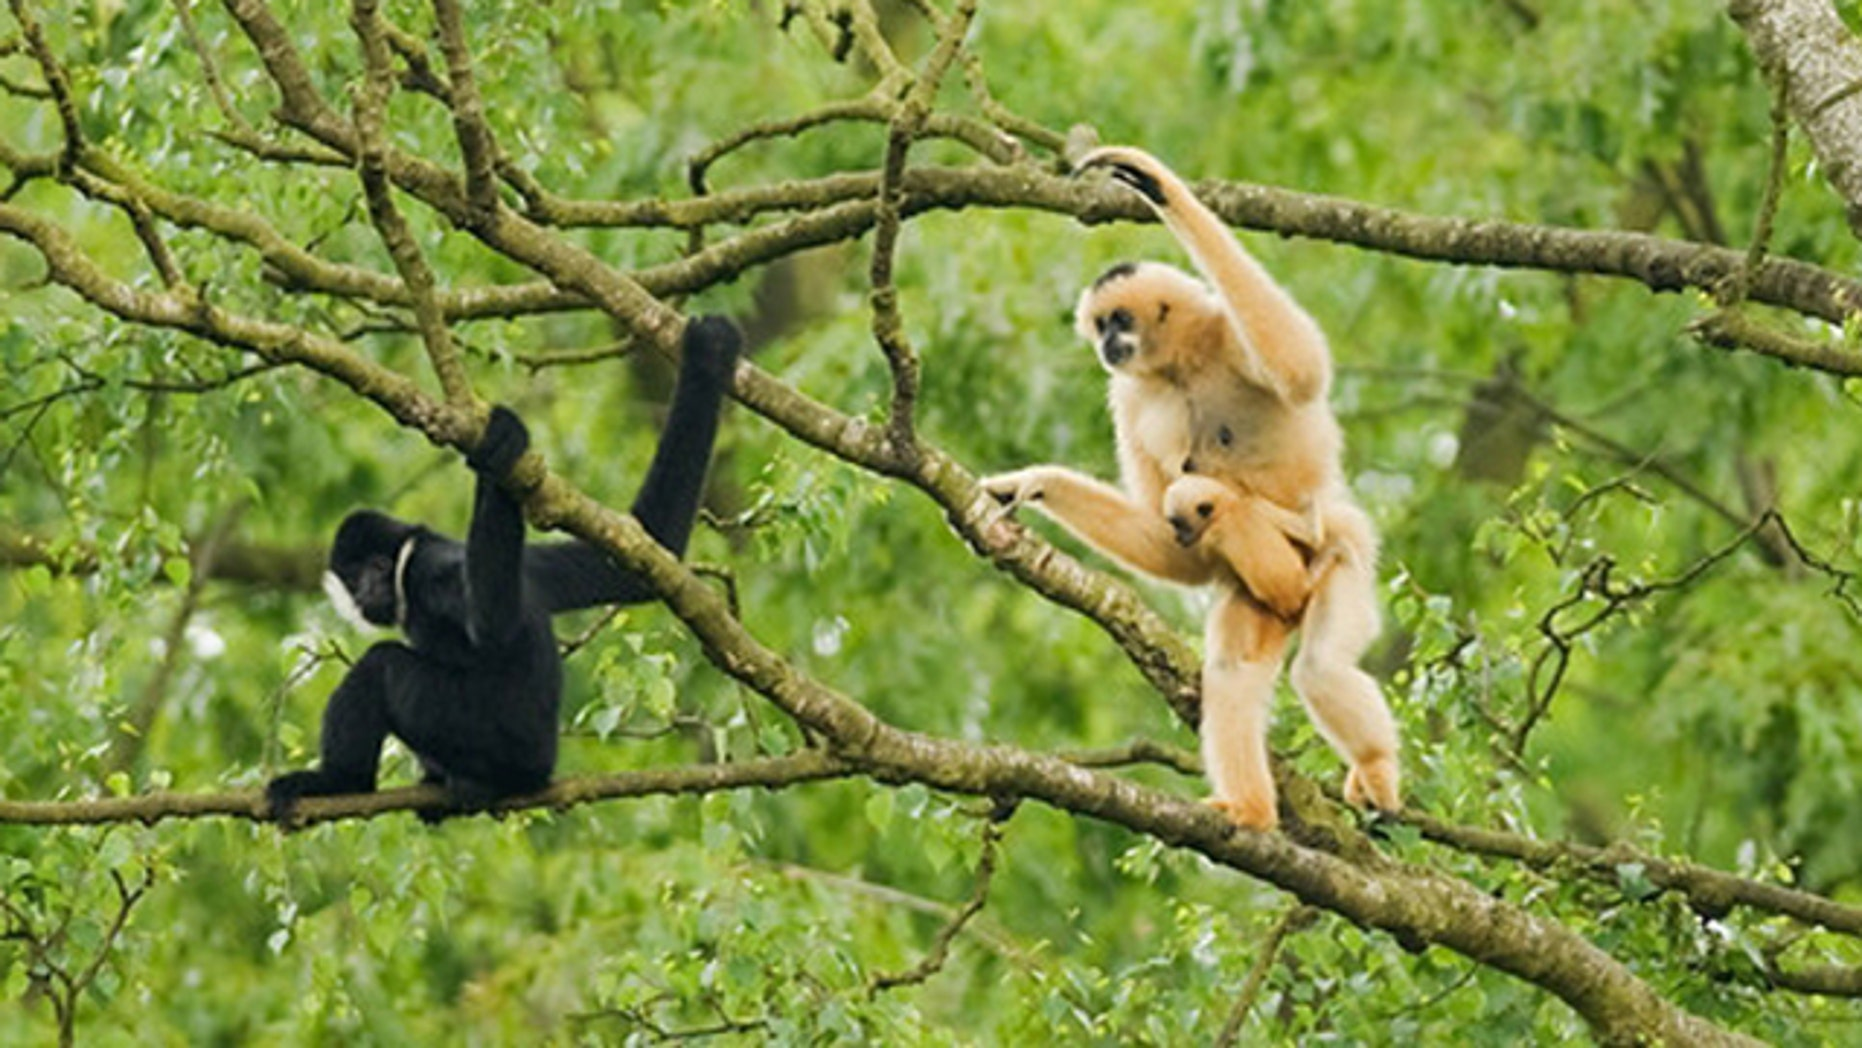 In this July 2011 photo released by Conservation International, an adult female northern white-cheeked crested gibbon, right, carries its baby as an adult male sits nearby at Pu Mat National Park, Nghe An province in Vietnam. About 455 northern white-cheeked crested gibbons were discovered in the National Park during a survey by the wildlife group Conservation International. The group is the largest known remaining population of the critically endangered primate.